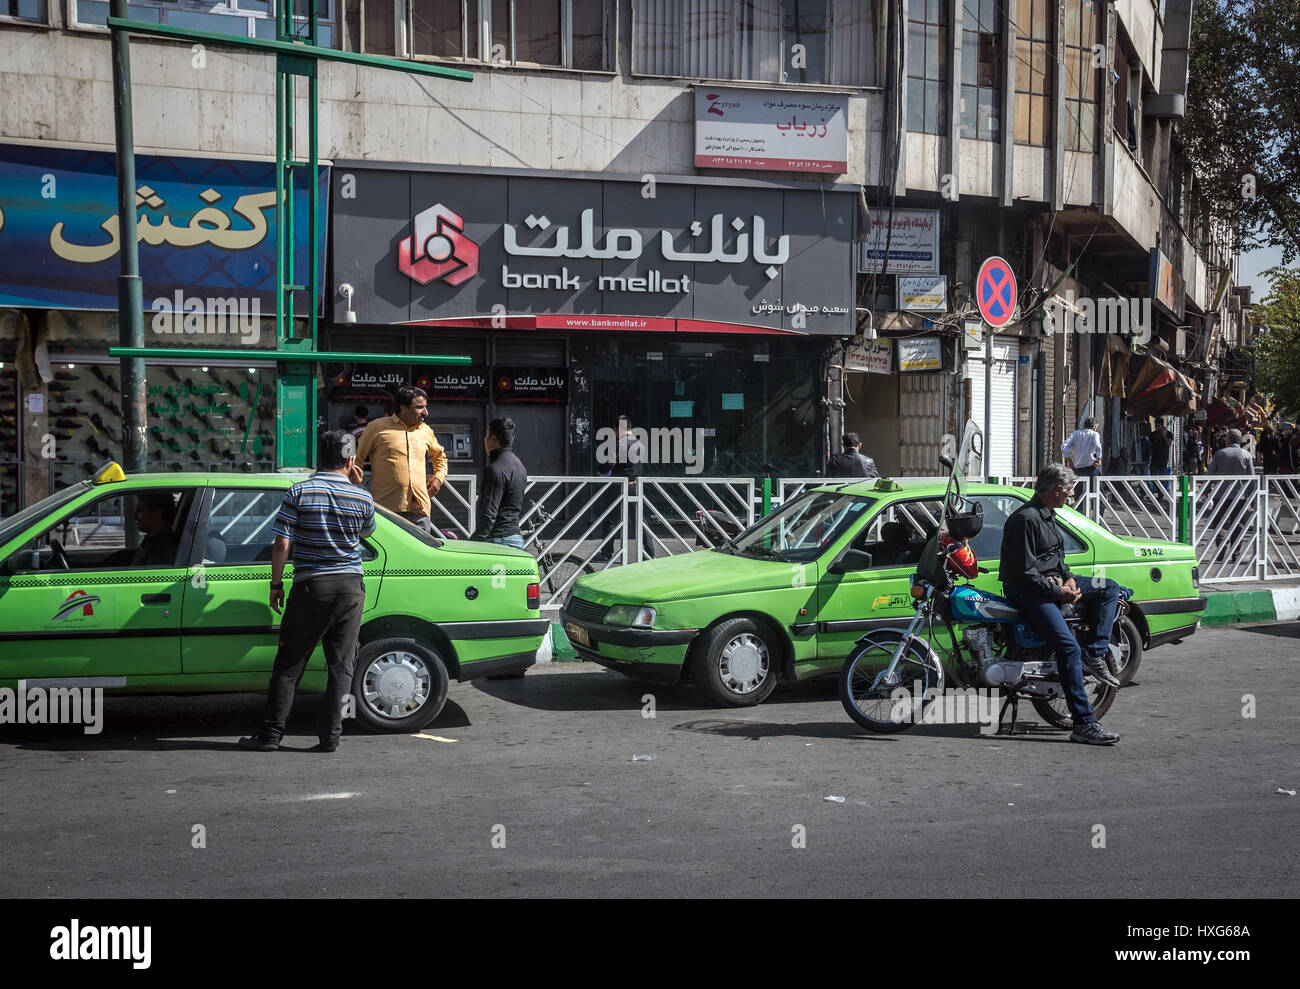 Green cabs on a street in Tehran city, capital of Iran and Tehran Province - Stock Image